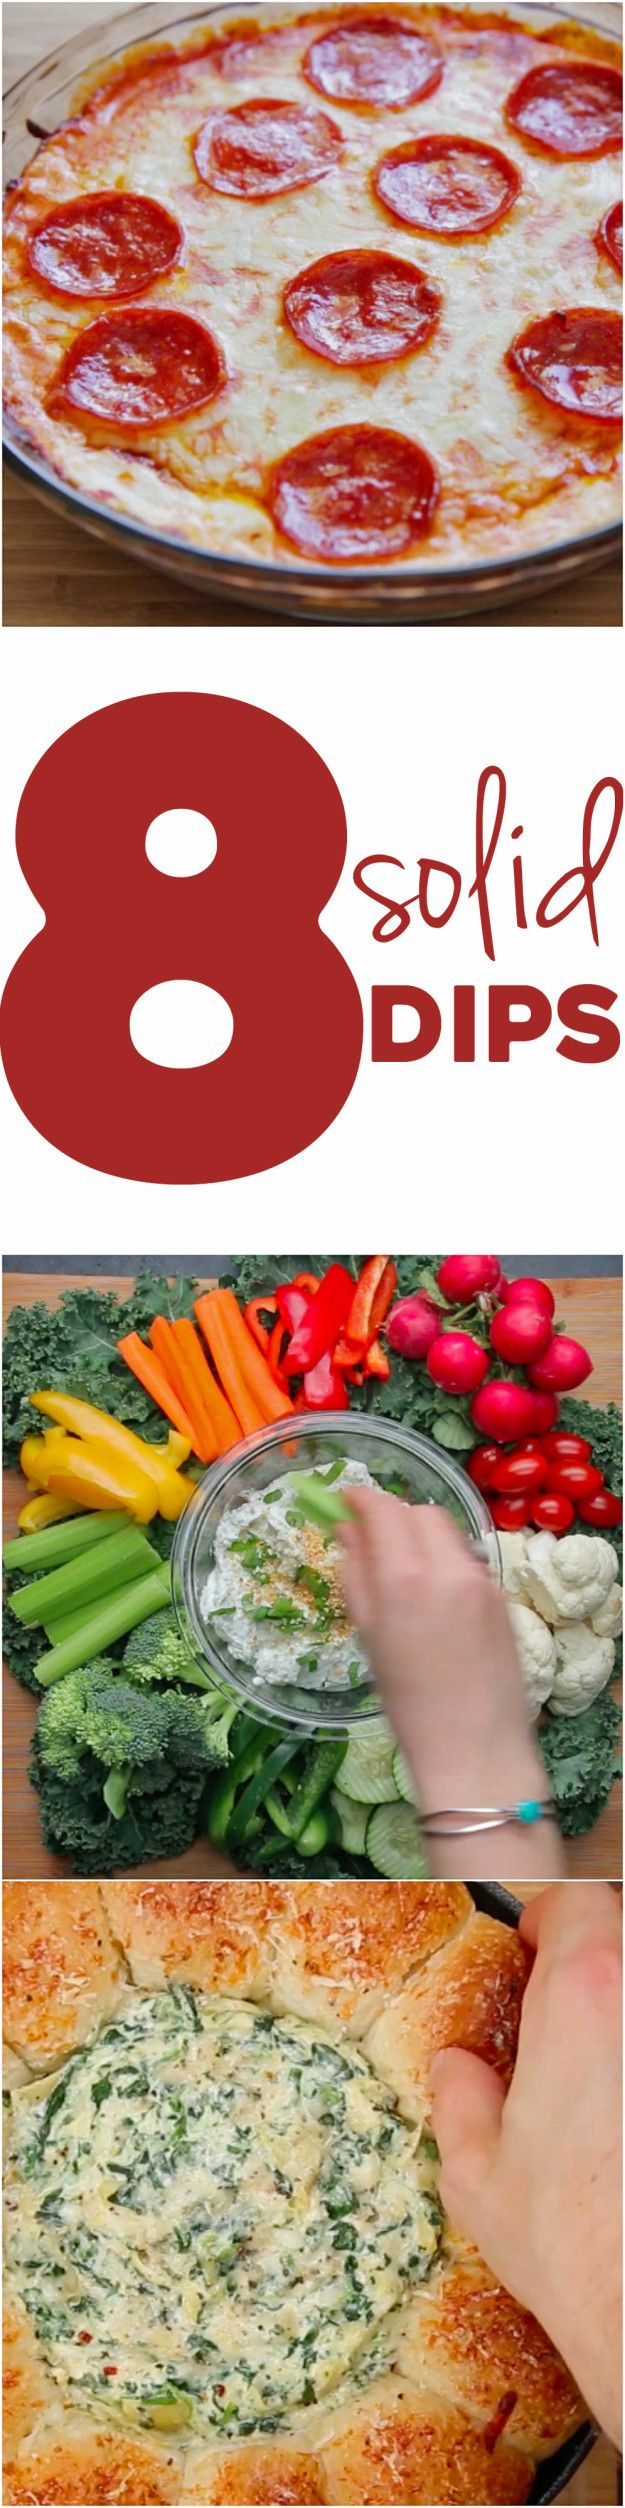 8 Easy Party Dips   Here Are 8 Incredible Dips That Are Perfect For A Last Minute Party